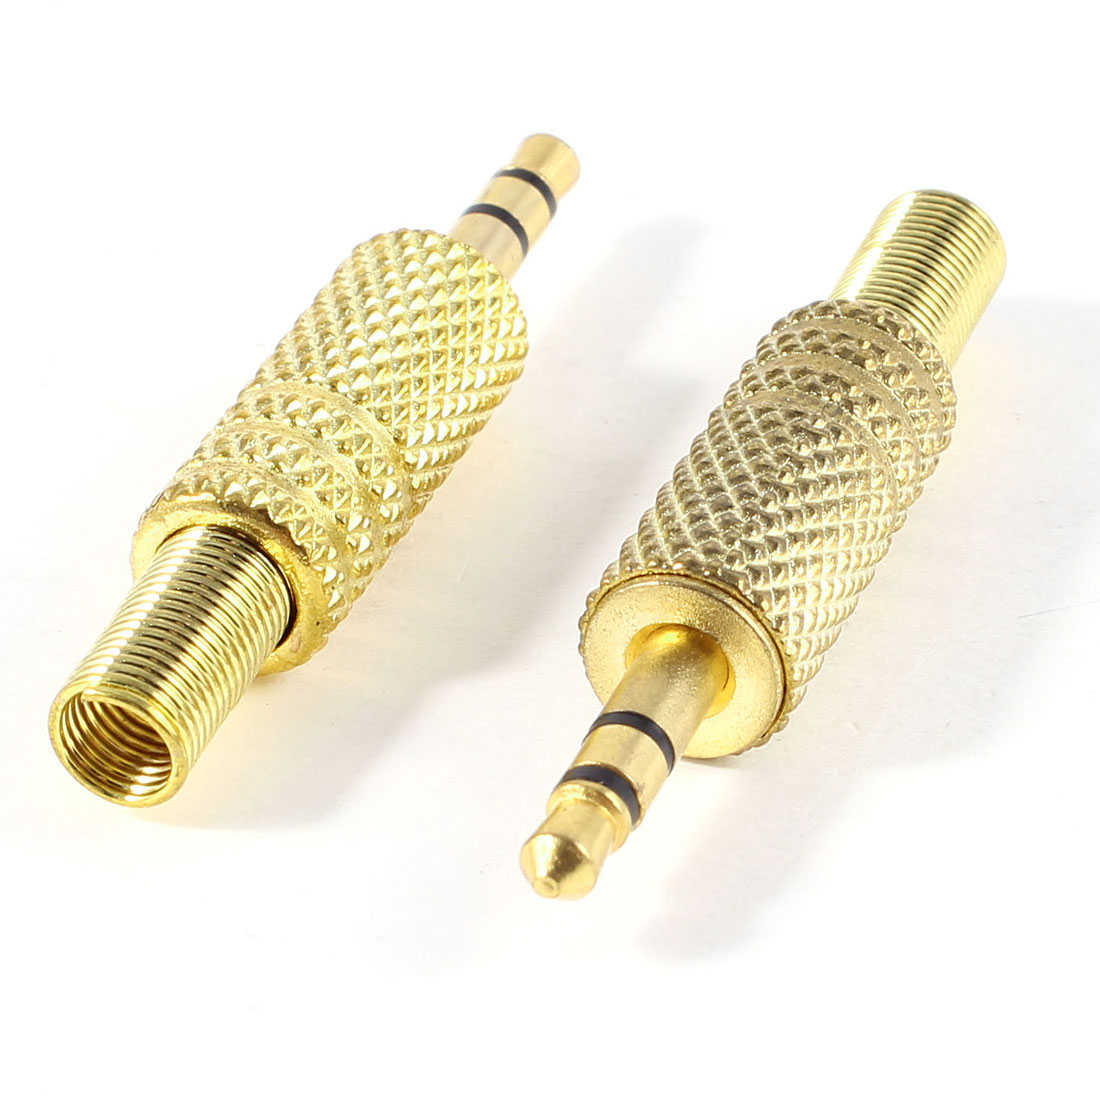 "2 Pcs Gold Tone Alloy 3.5mm 1/8"" Male Jack Plug Coax Cable Audio Connector"